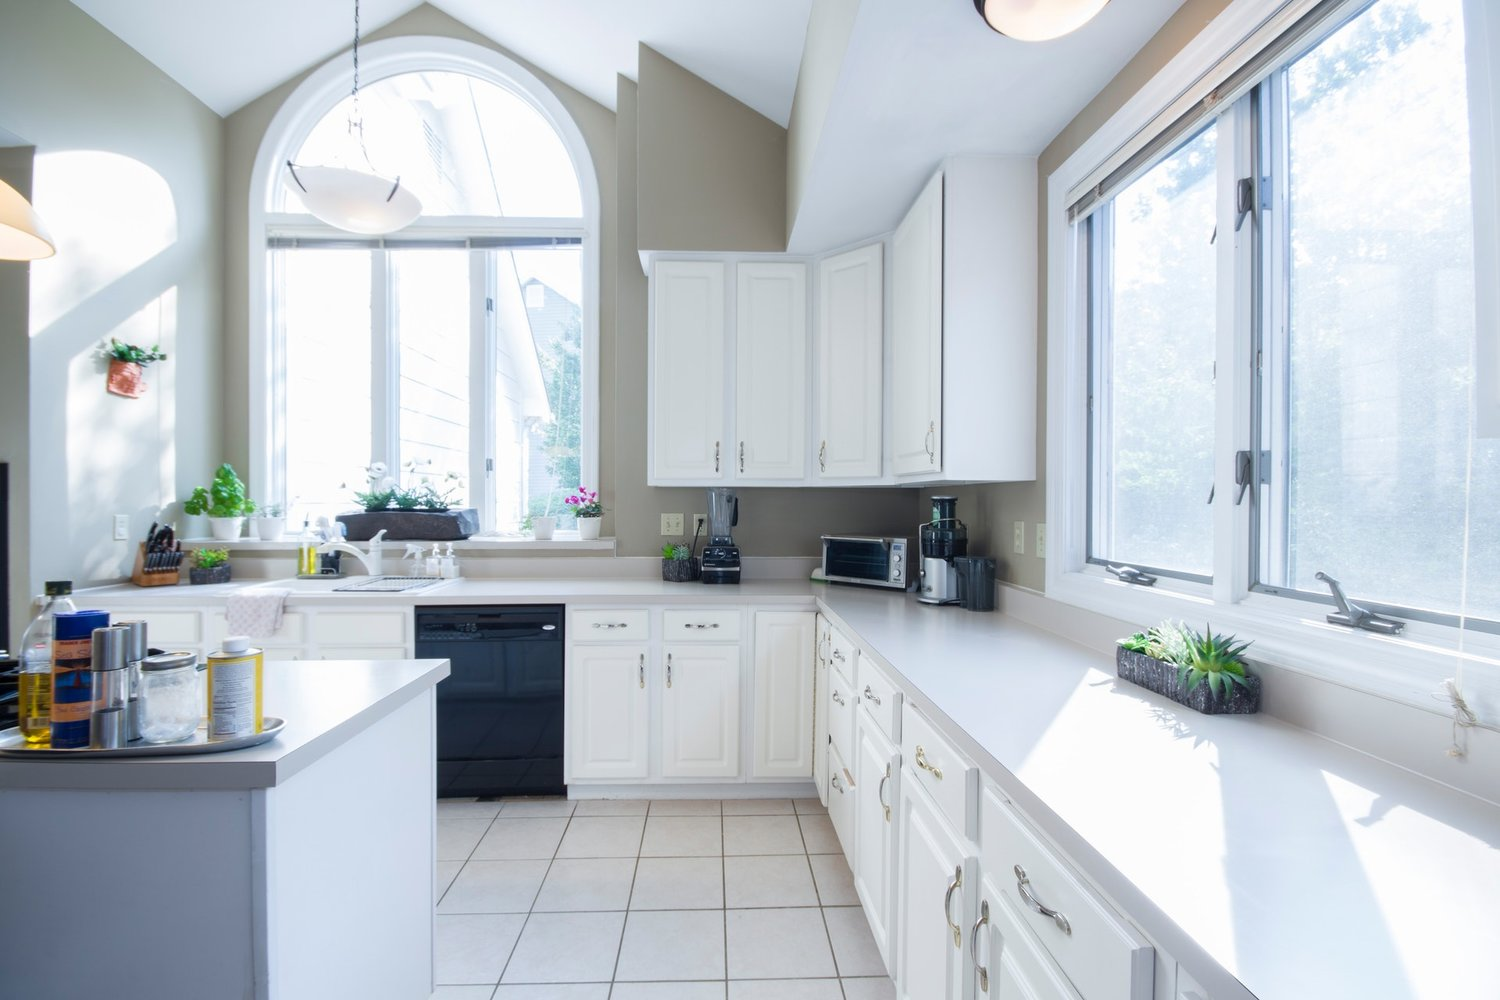 Prices For Cleaning Services — Detailed Cleaning | Cleaning ...